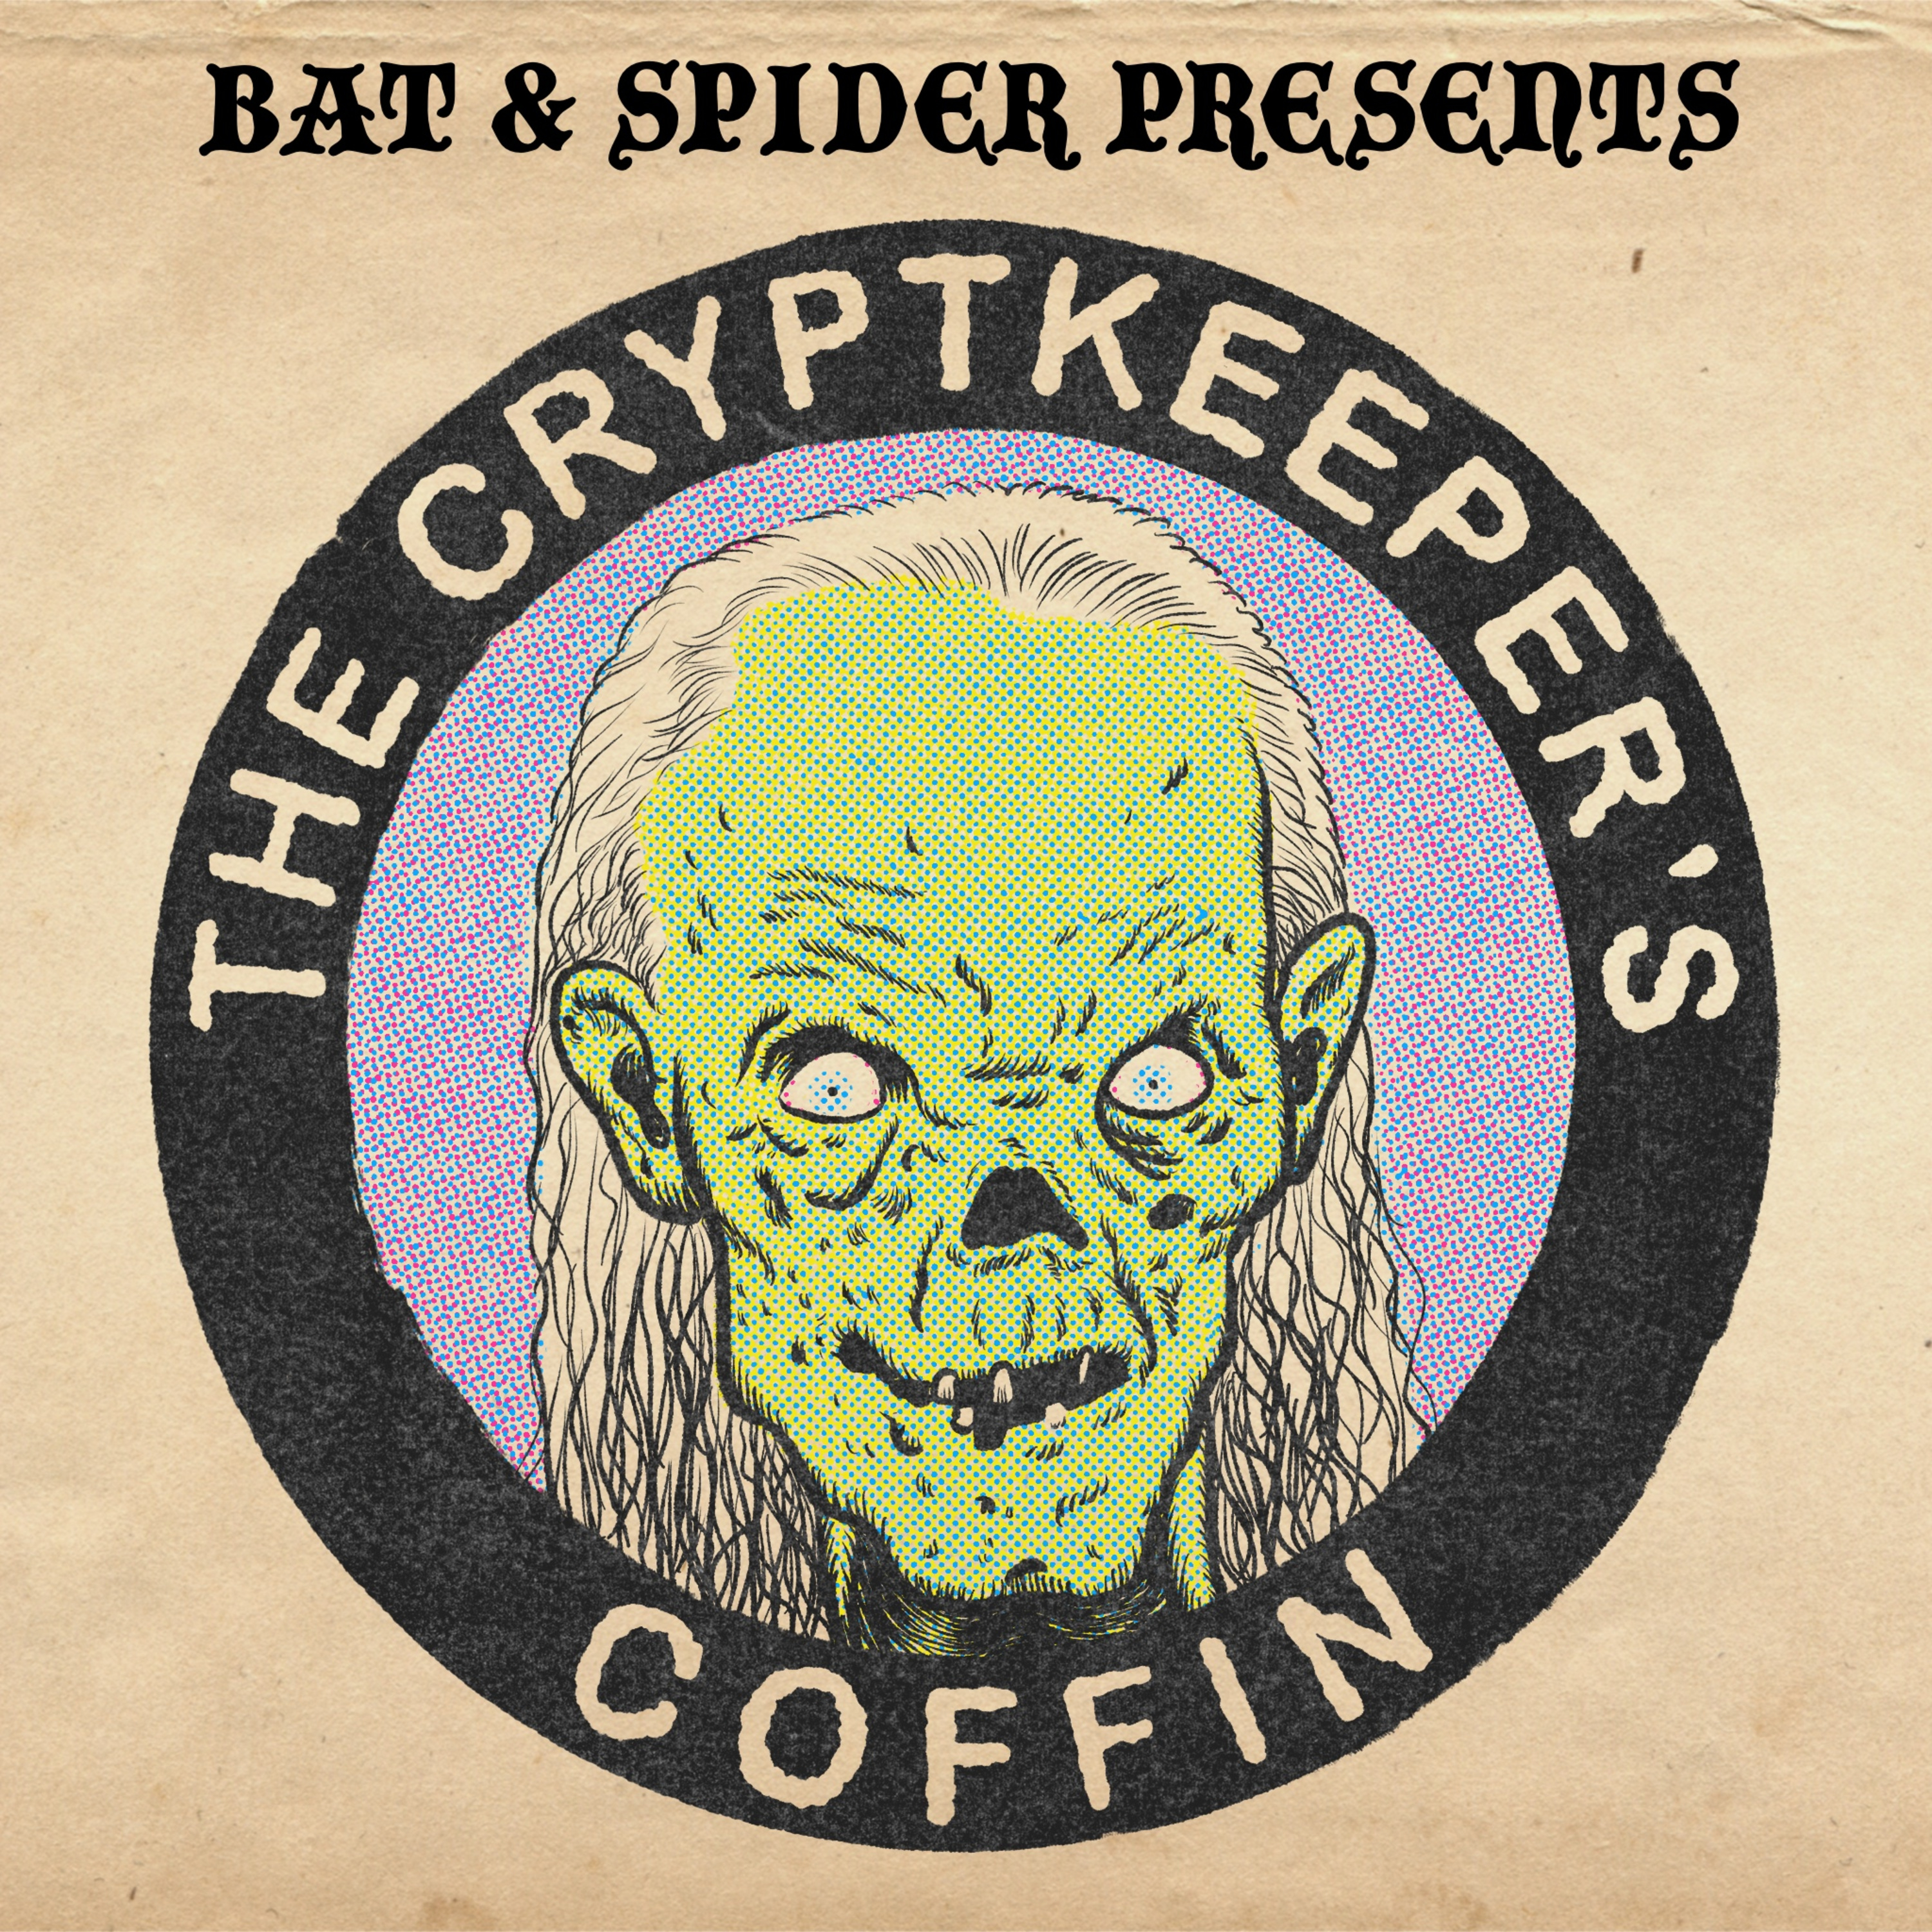 The Crypt Keeper's Coffin 001 - The Man Who Was Death